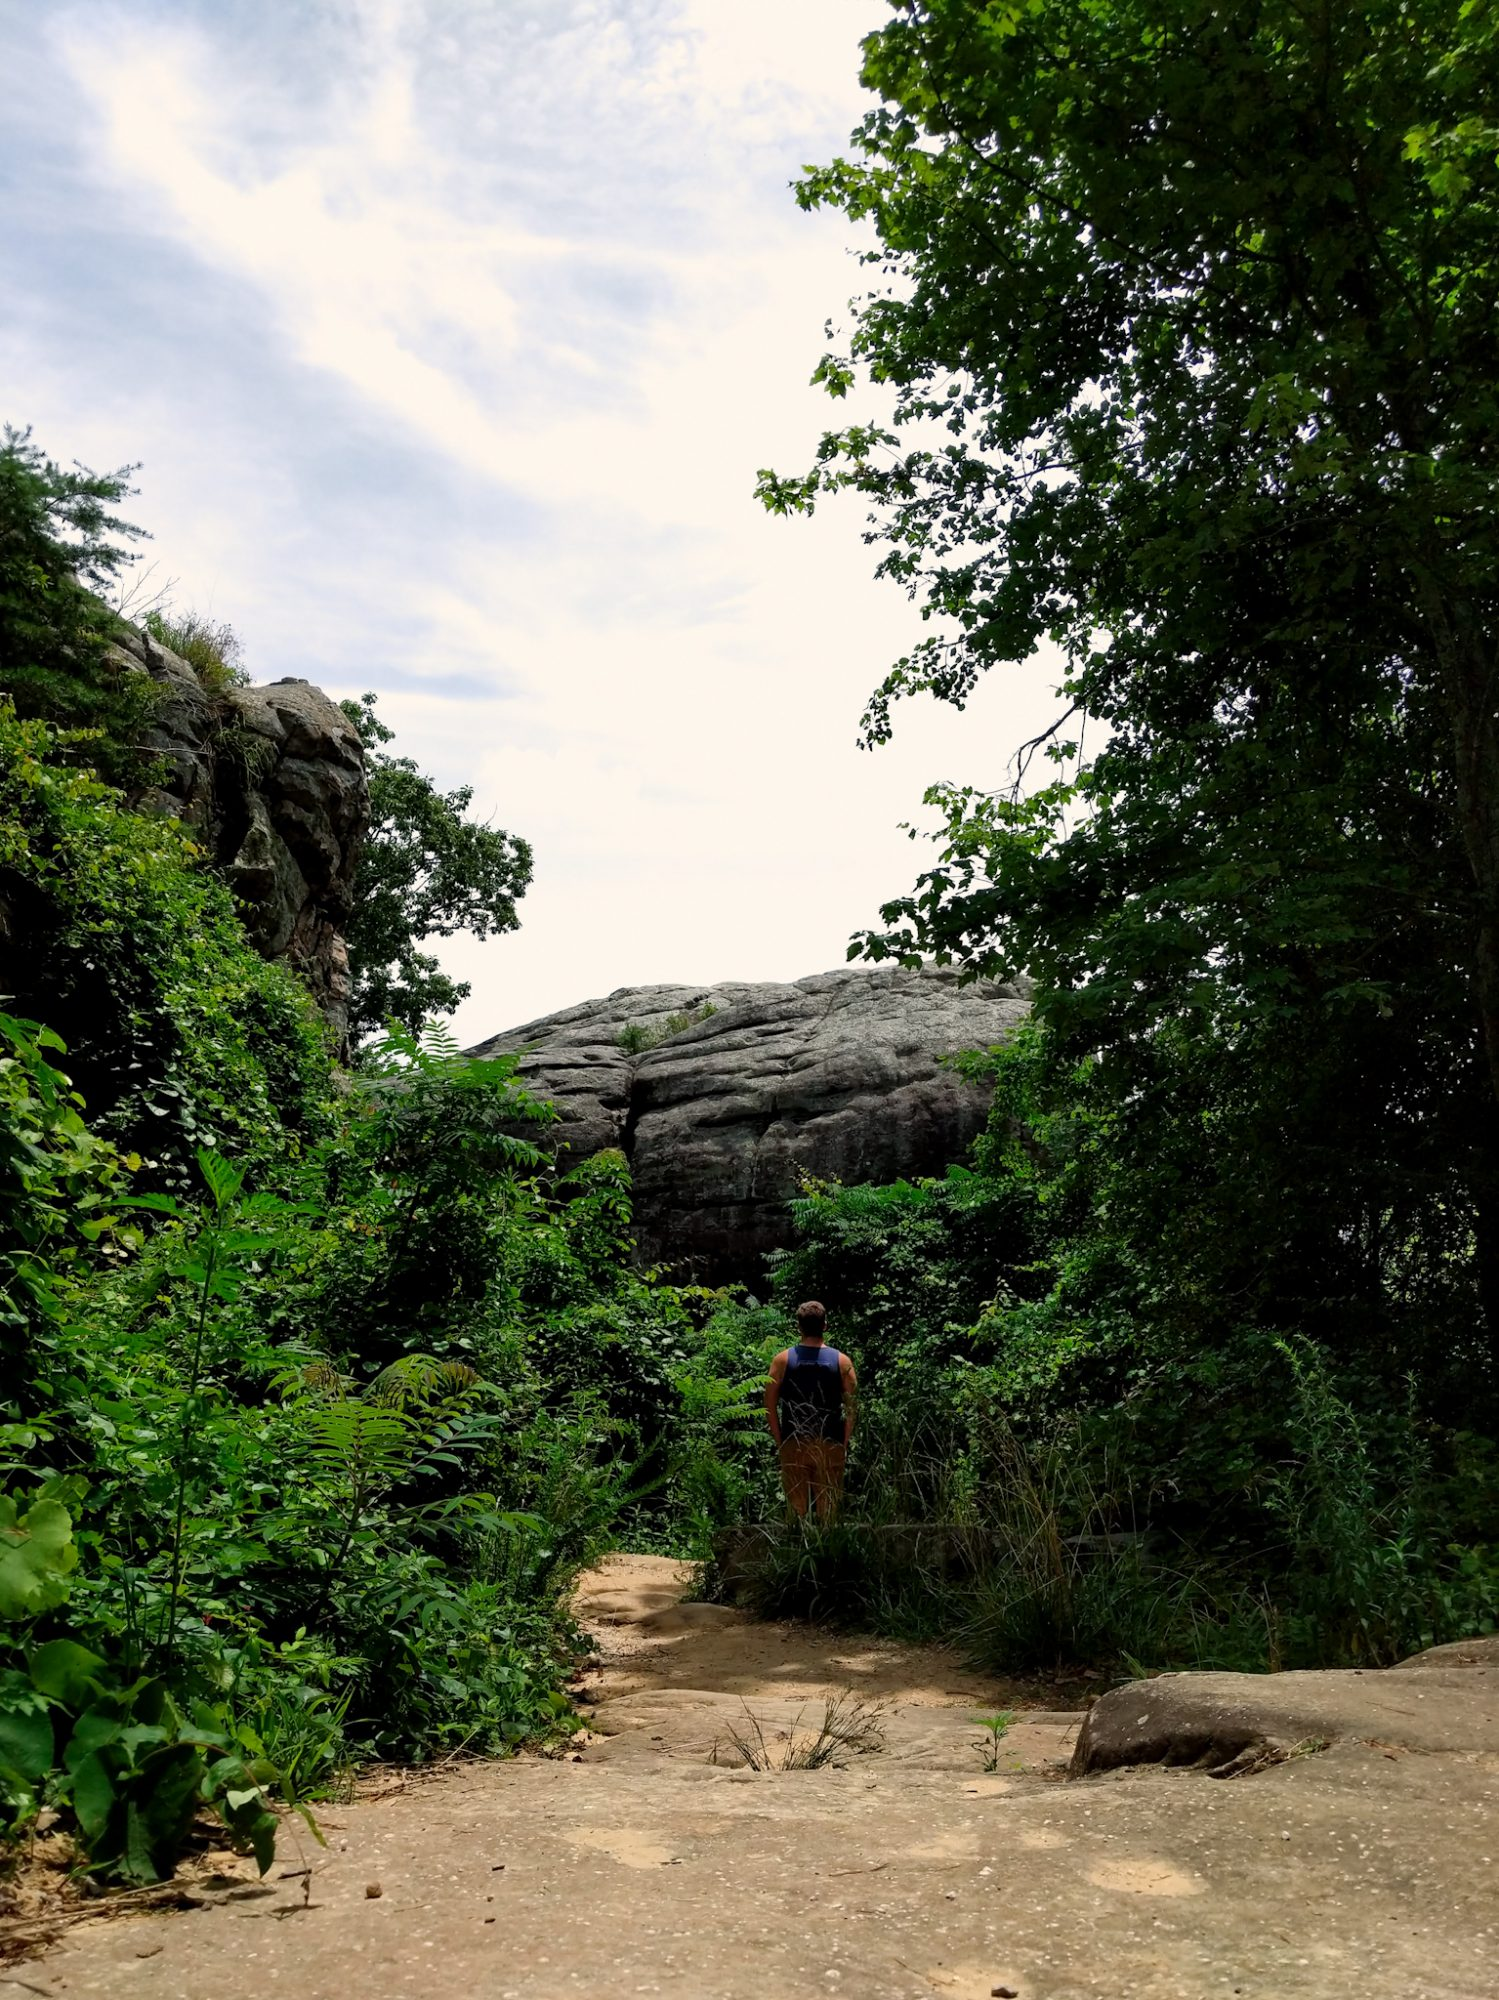 Alabama's Cherokee Rock Village is a scenic mecca for hikers